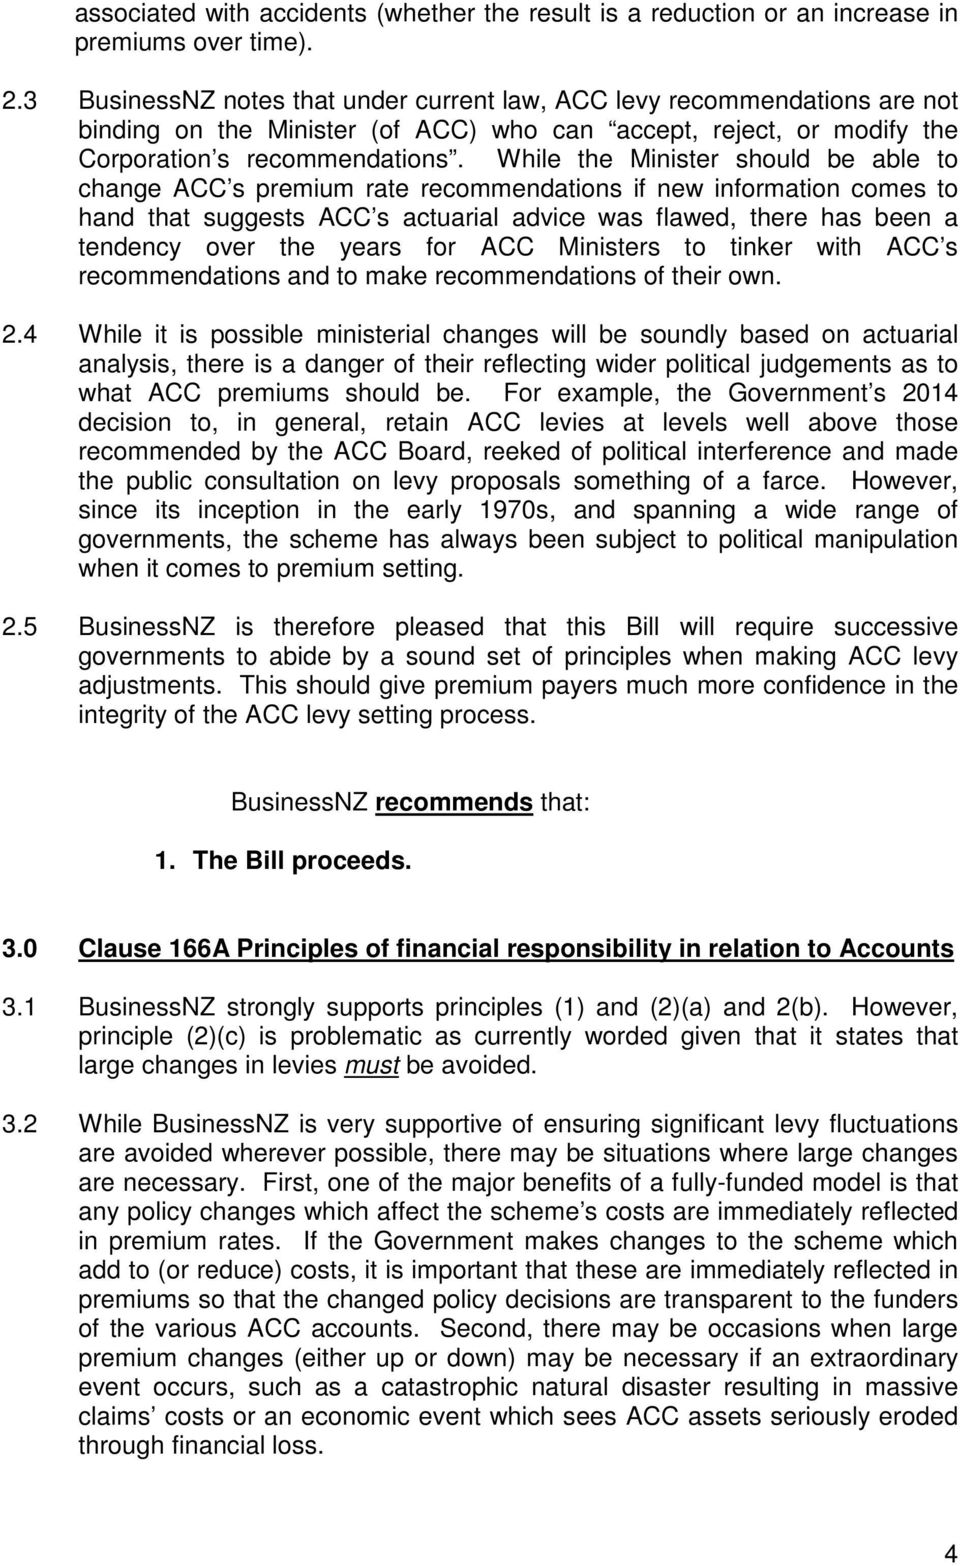 While the Minister should be able to change ACC s premium rate recommendations if new information comes to hand that suggests ACC s actuarial advice was flawed, there has been a tendency over the